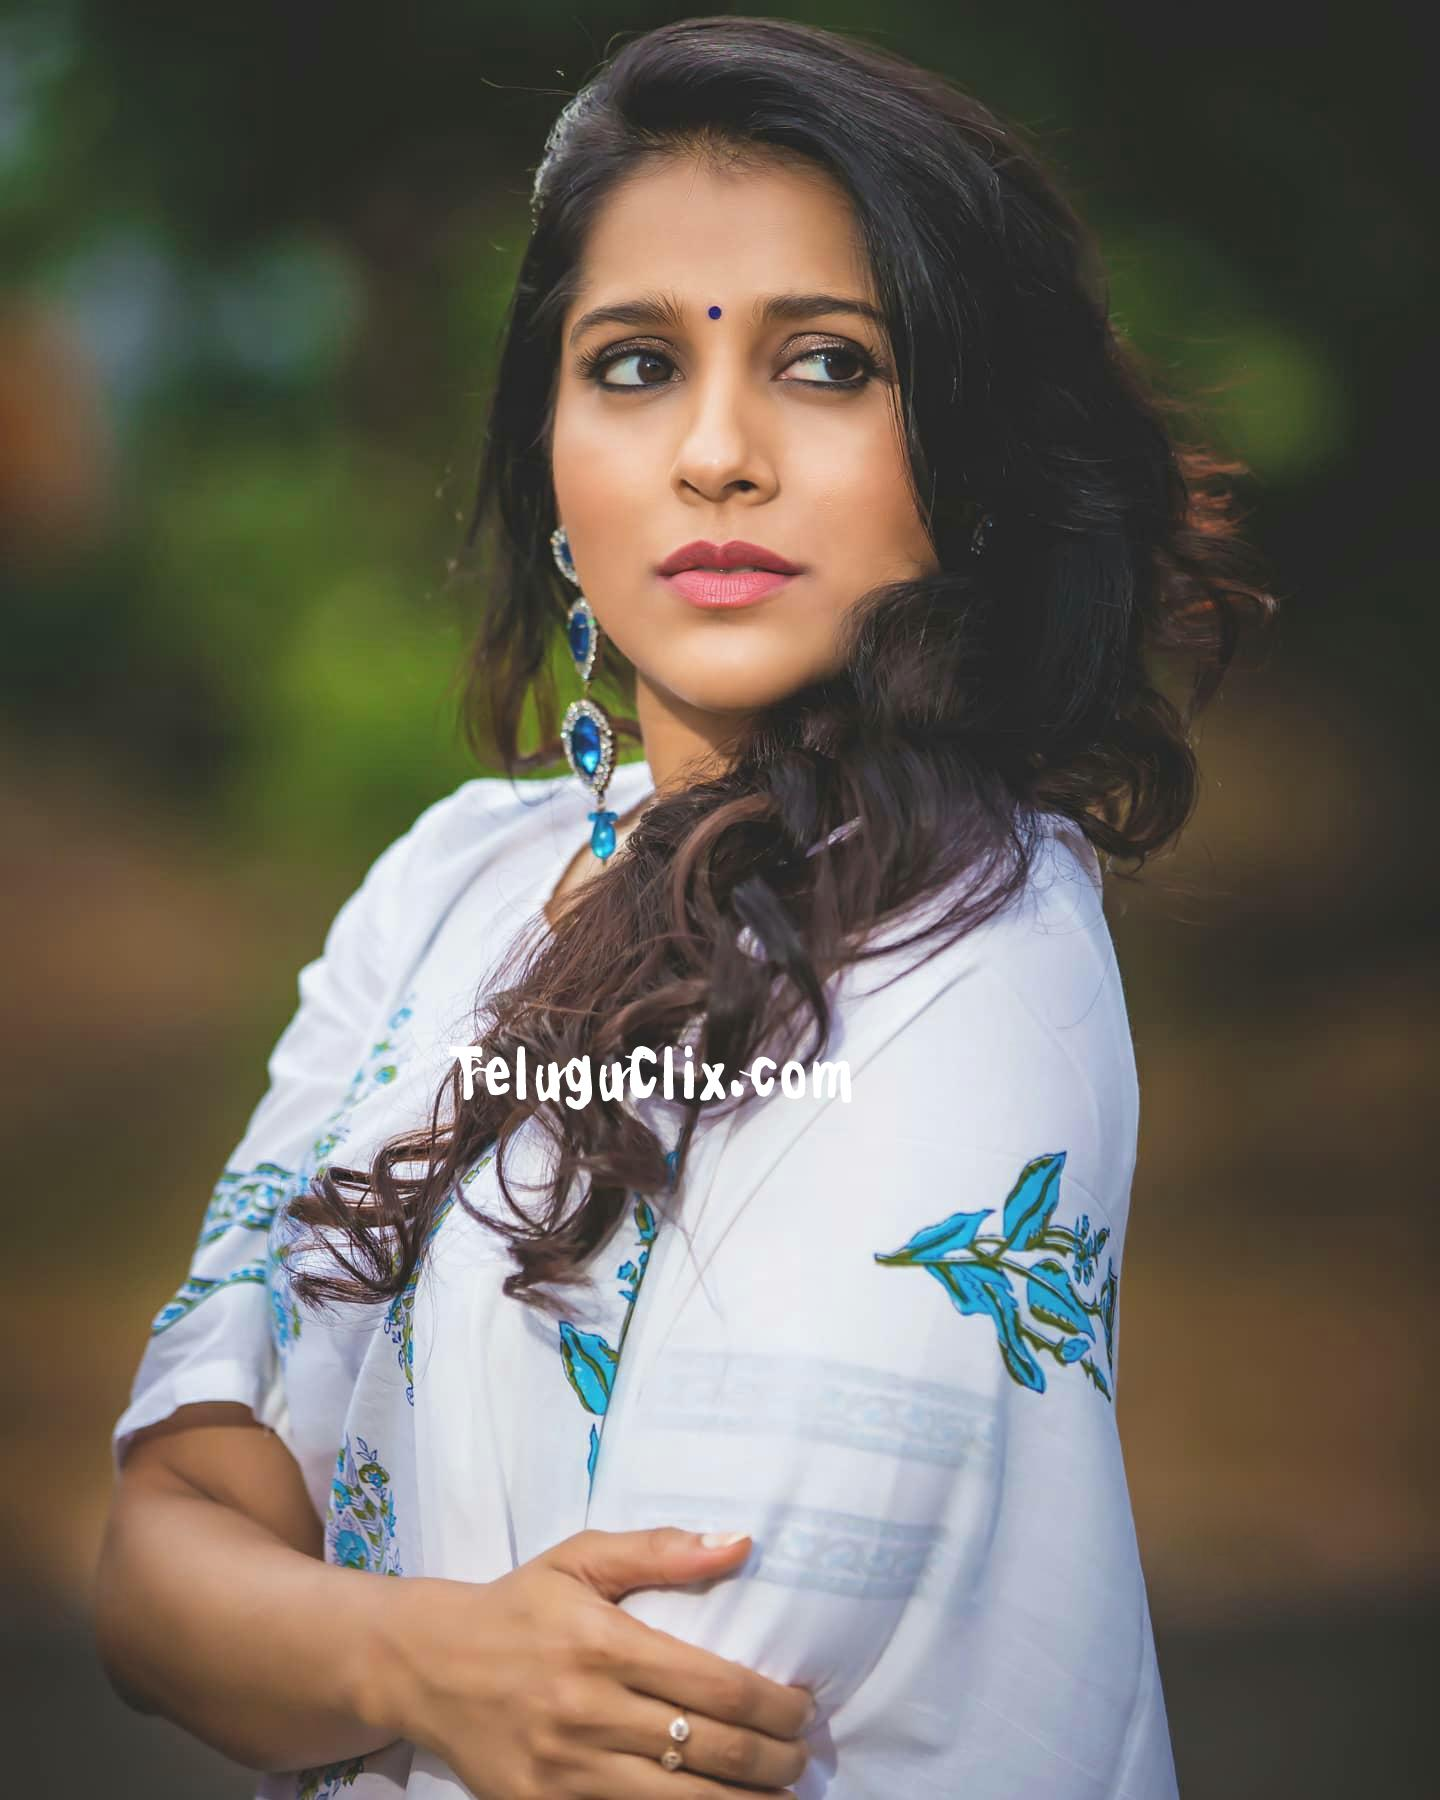 Rashmi Phots / Know about rashmi gautam's biography, life style, hd photos, age, wiki, filmography and more.